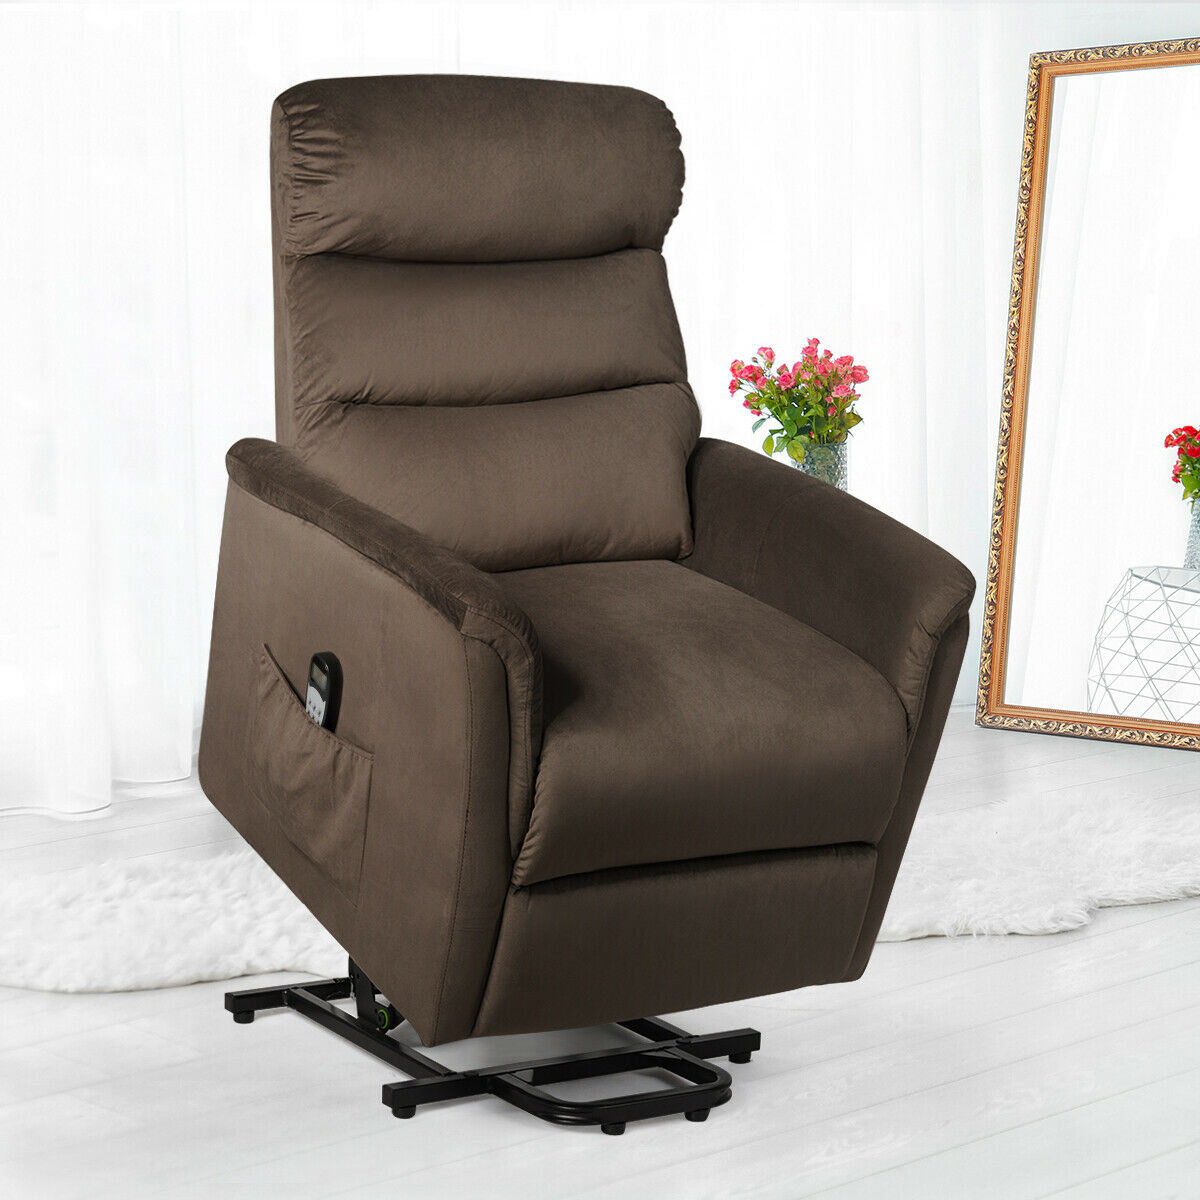 Electric Power Lift Chair Recliner Sofa Chair Remote Control Living Room